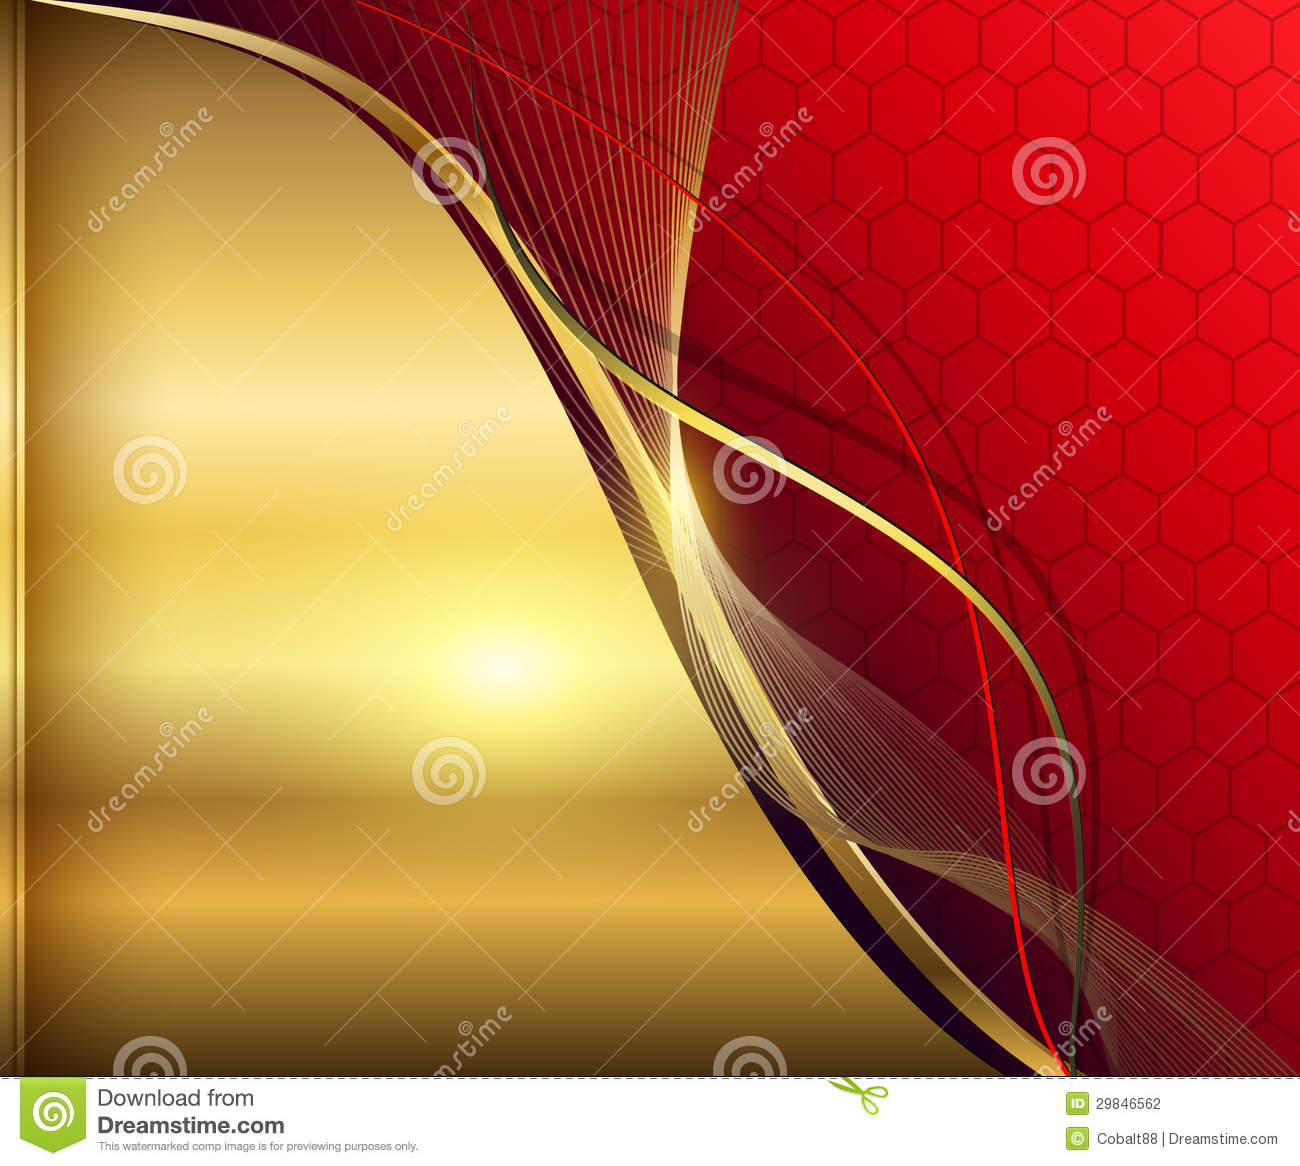 Elegant abstract background red and gold Elegant Red And Gold Background